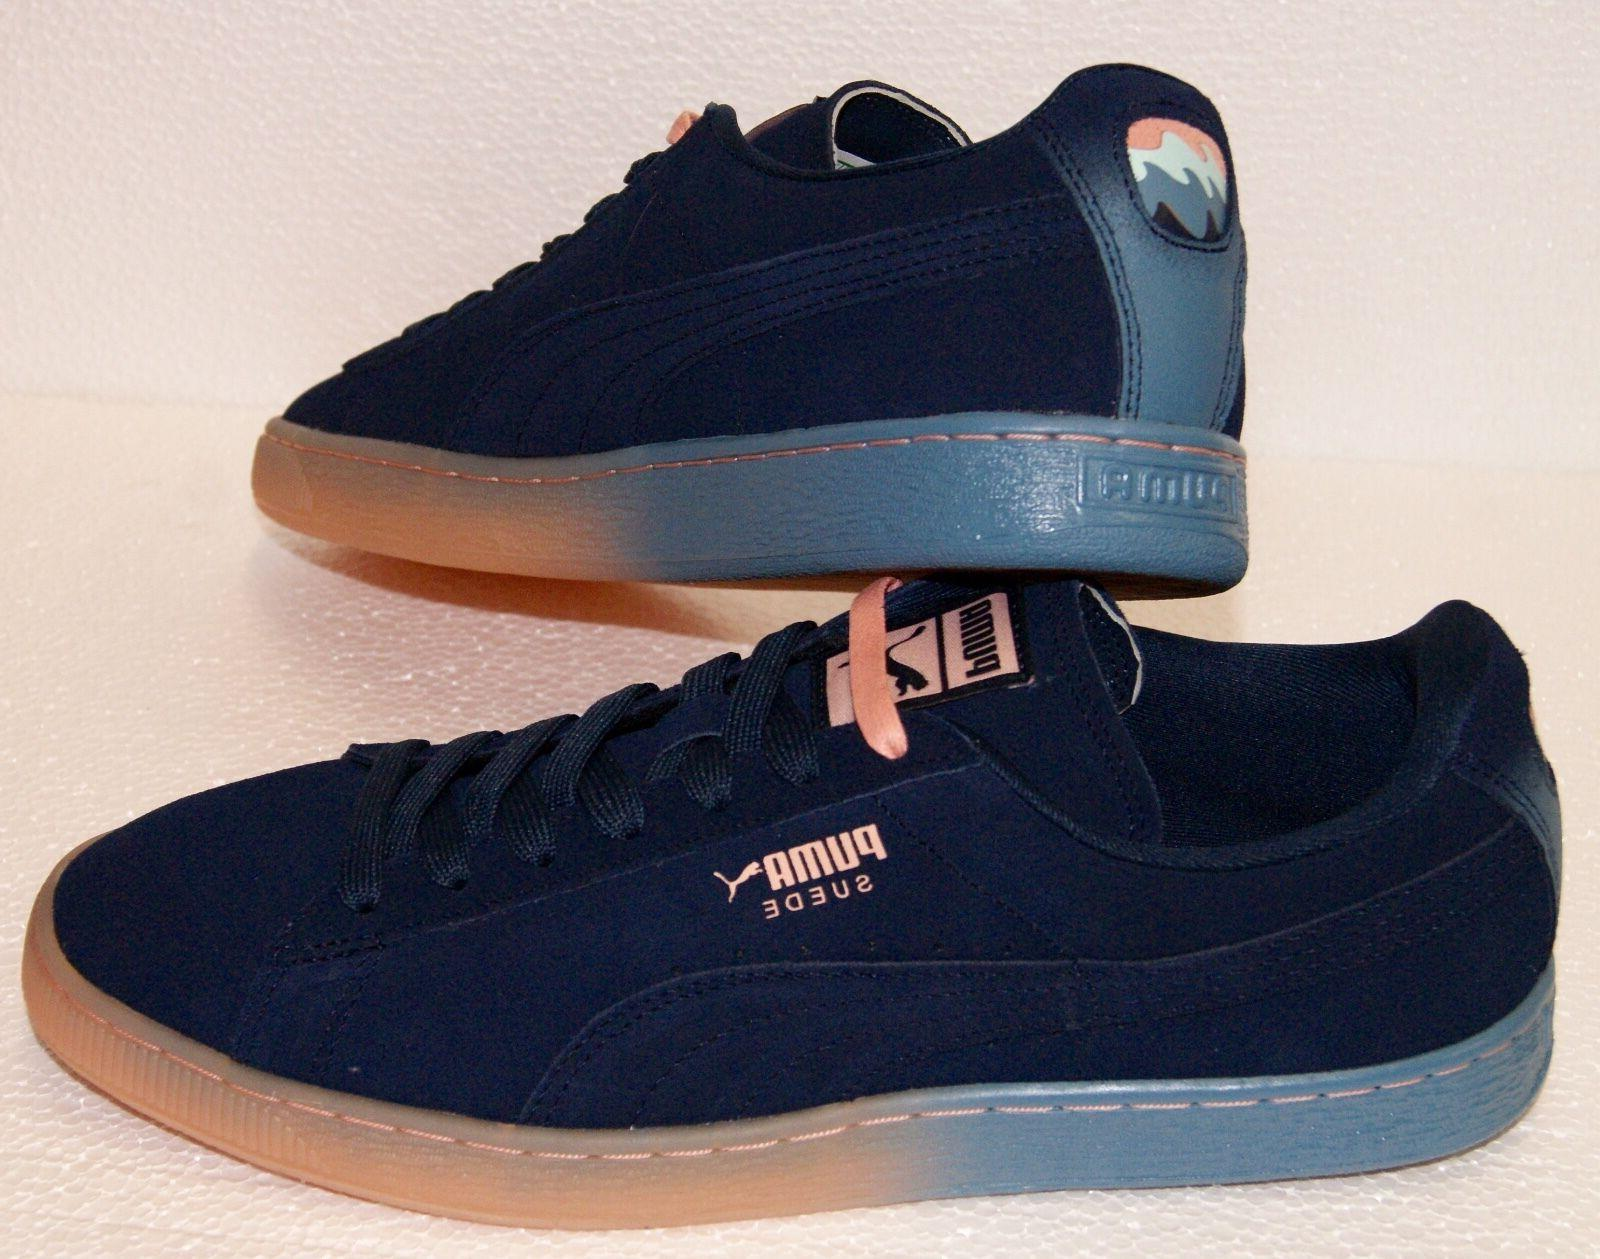 x pink dolphin suede classic pd dress